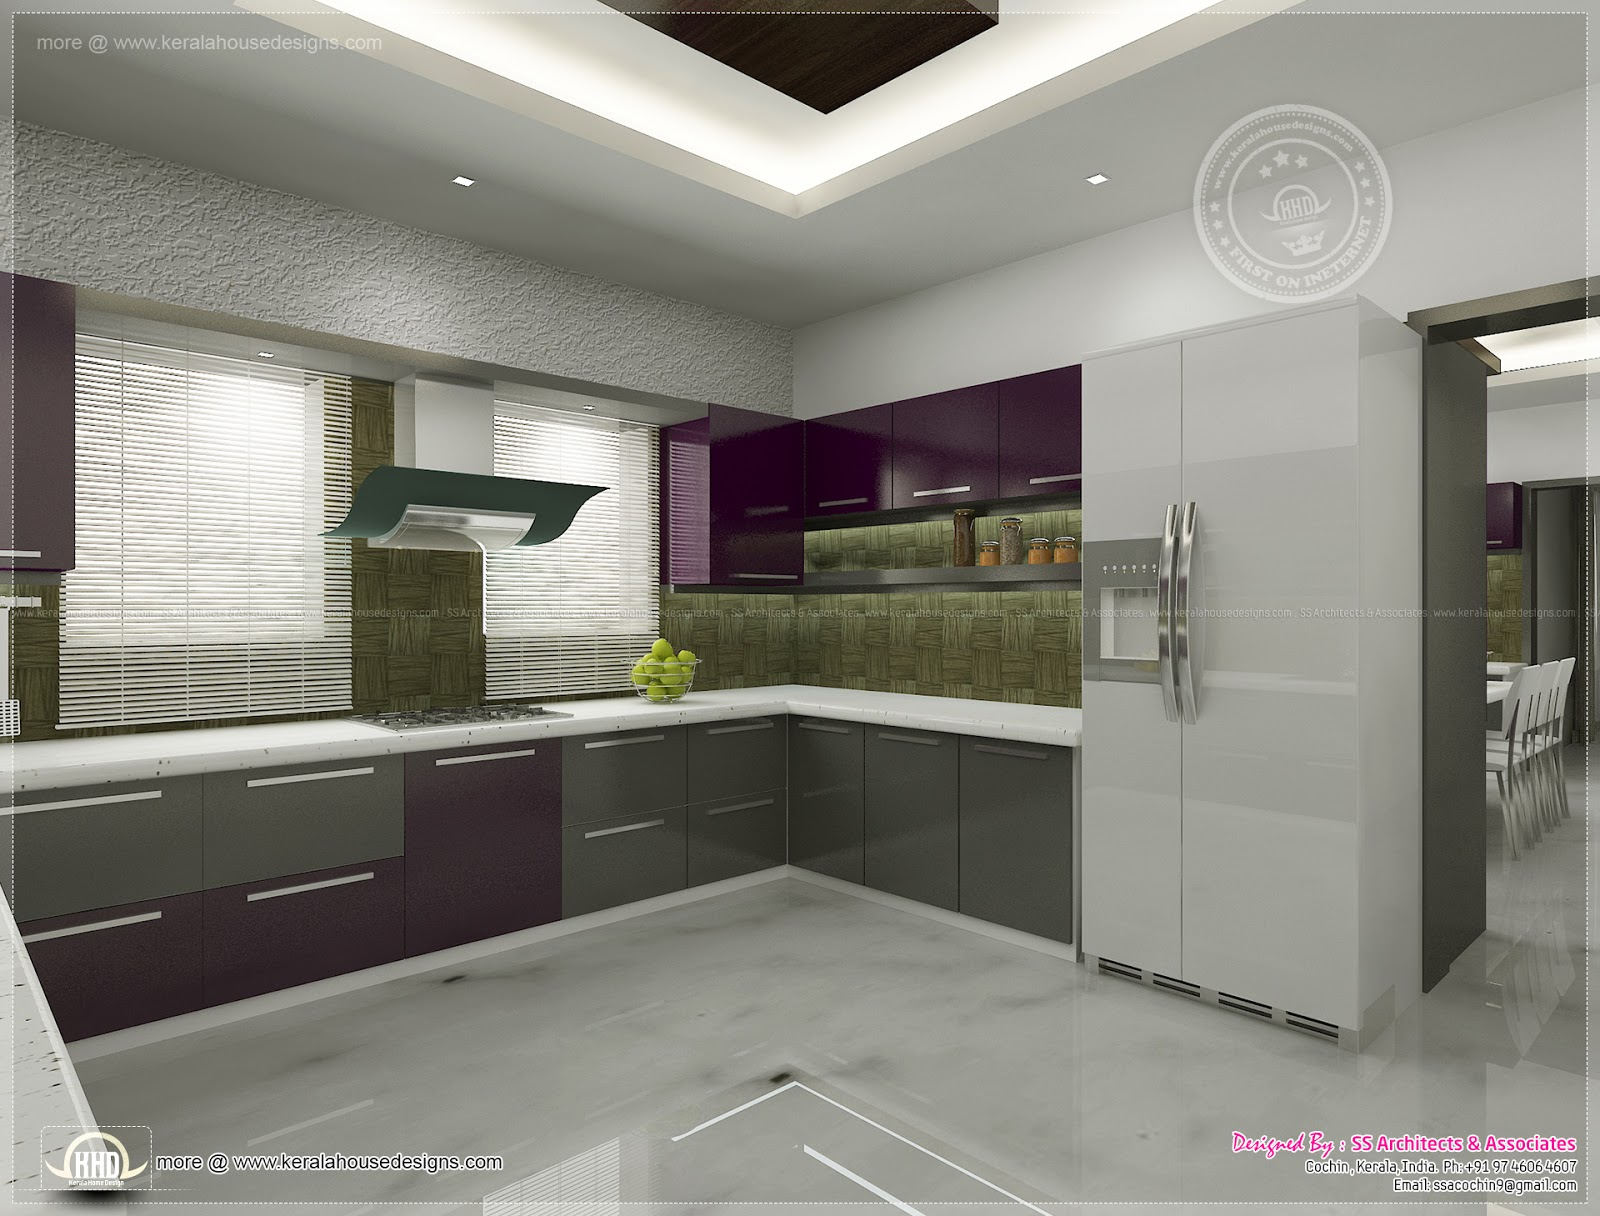 Kitchen interior views by ss architects cochin kerala for House interior design kerala photos